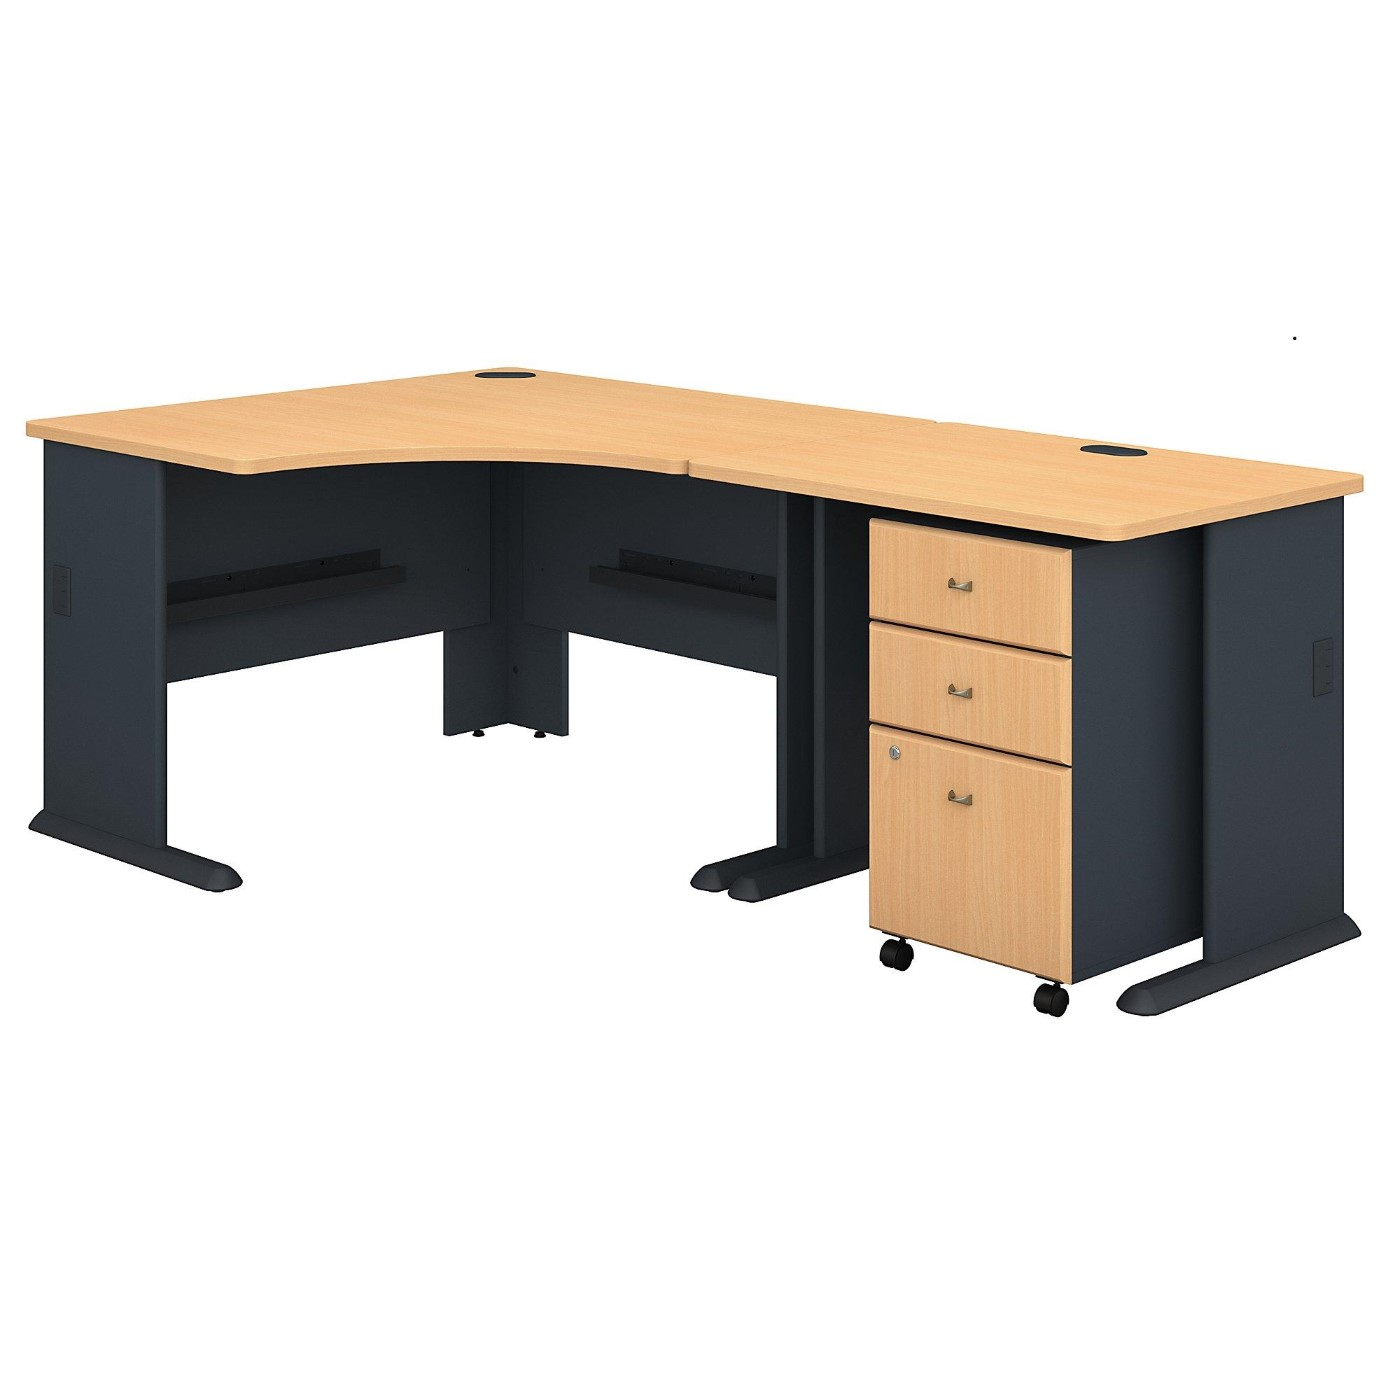 <font color=#c60><b>BUSH BUSINESS FURNITURE SERIES A 48W CORNER DESK WITH 36W RETURN AND MOBILE FILE CABINET. FREE SHIPPING</font></b>